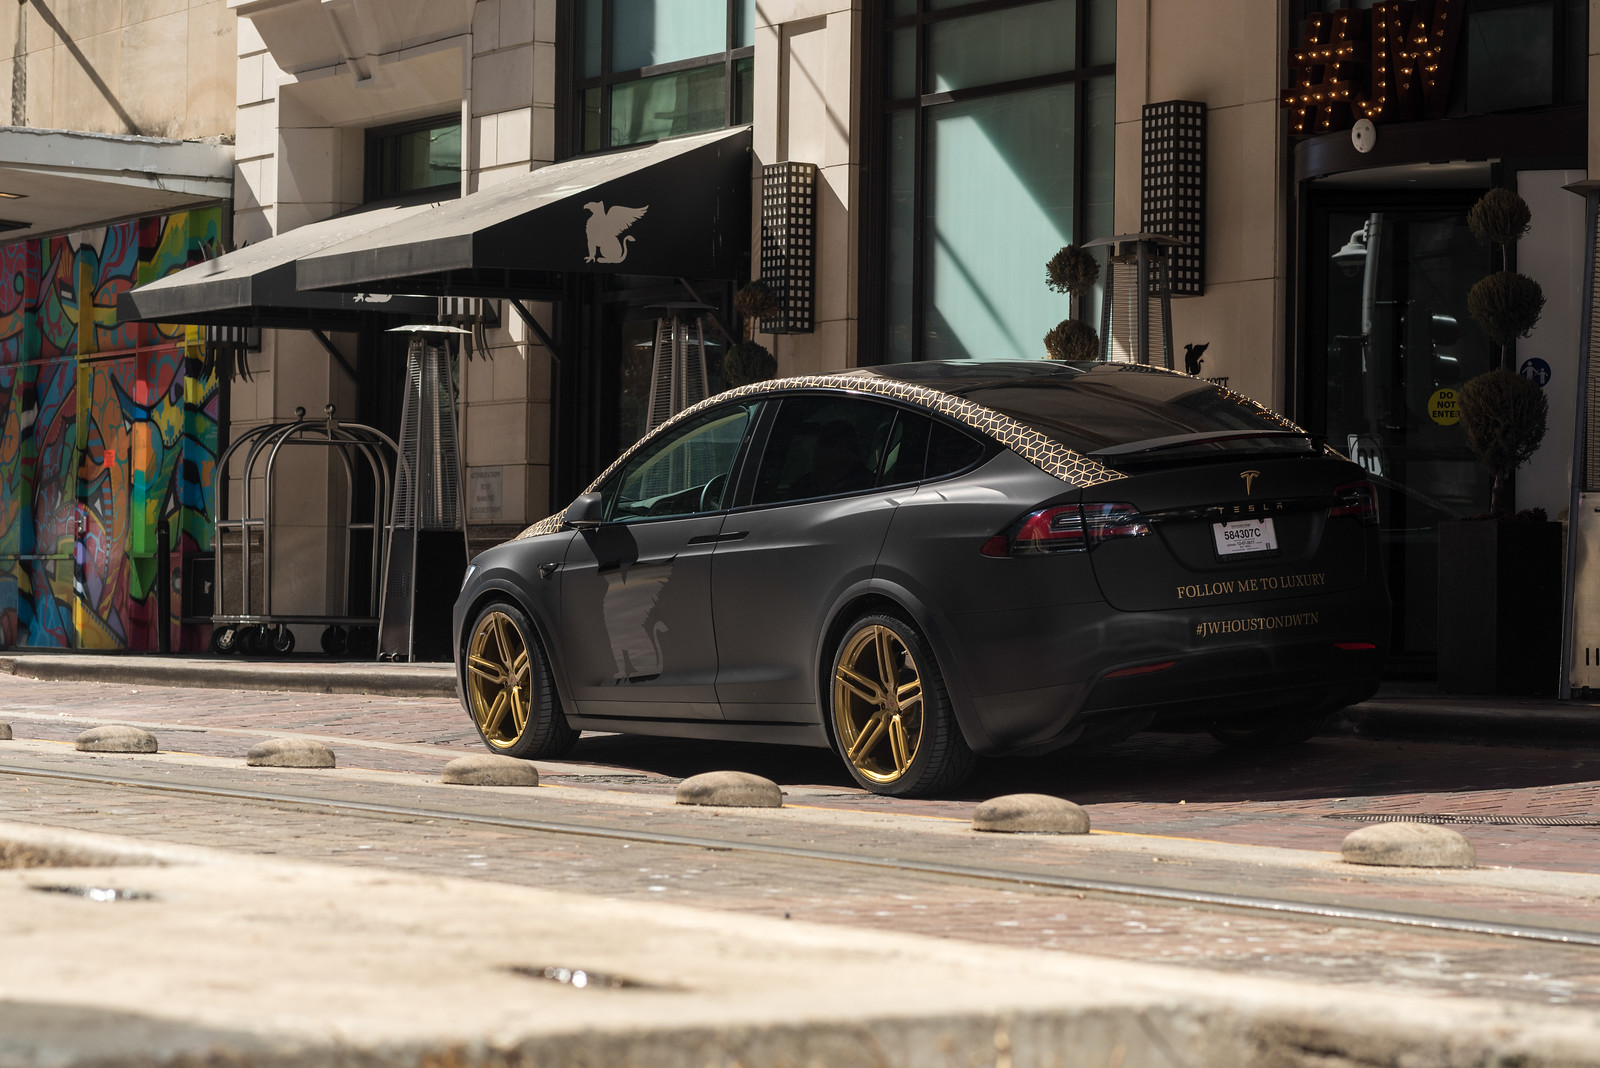 JW Marriot Houston Downtown Tesla Model X-17-X3.jpg